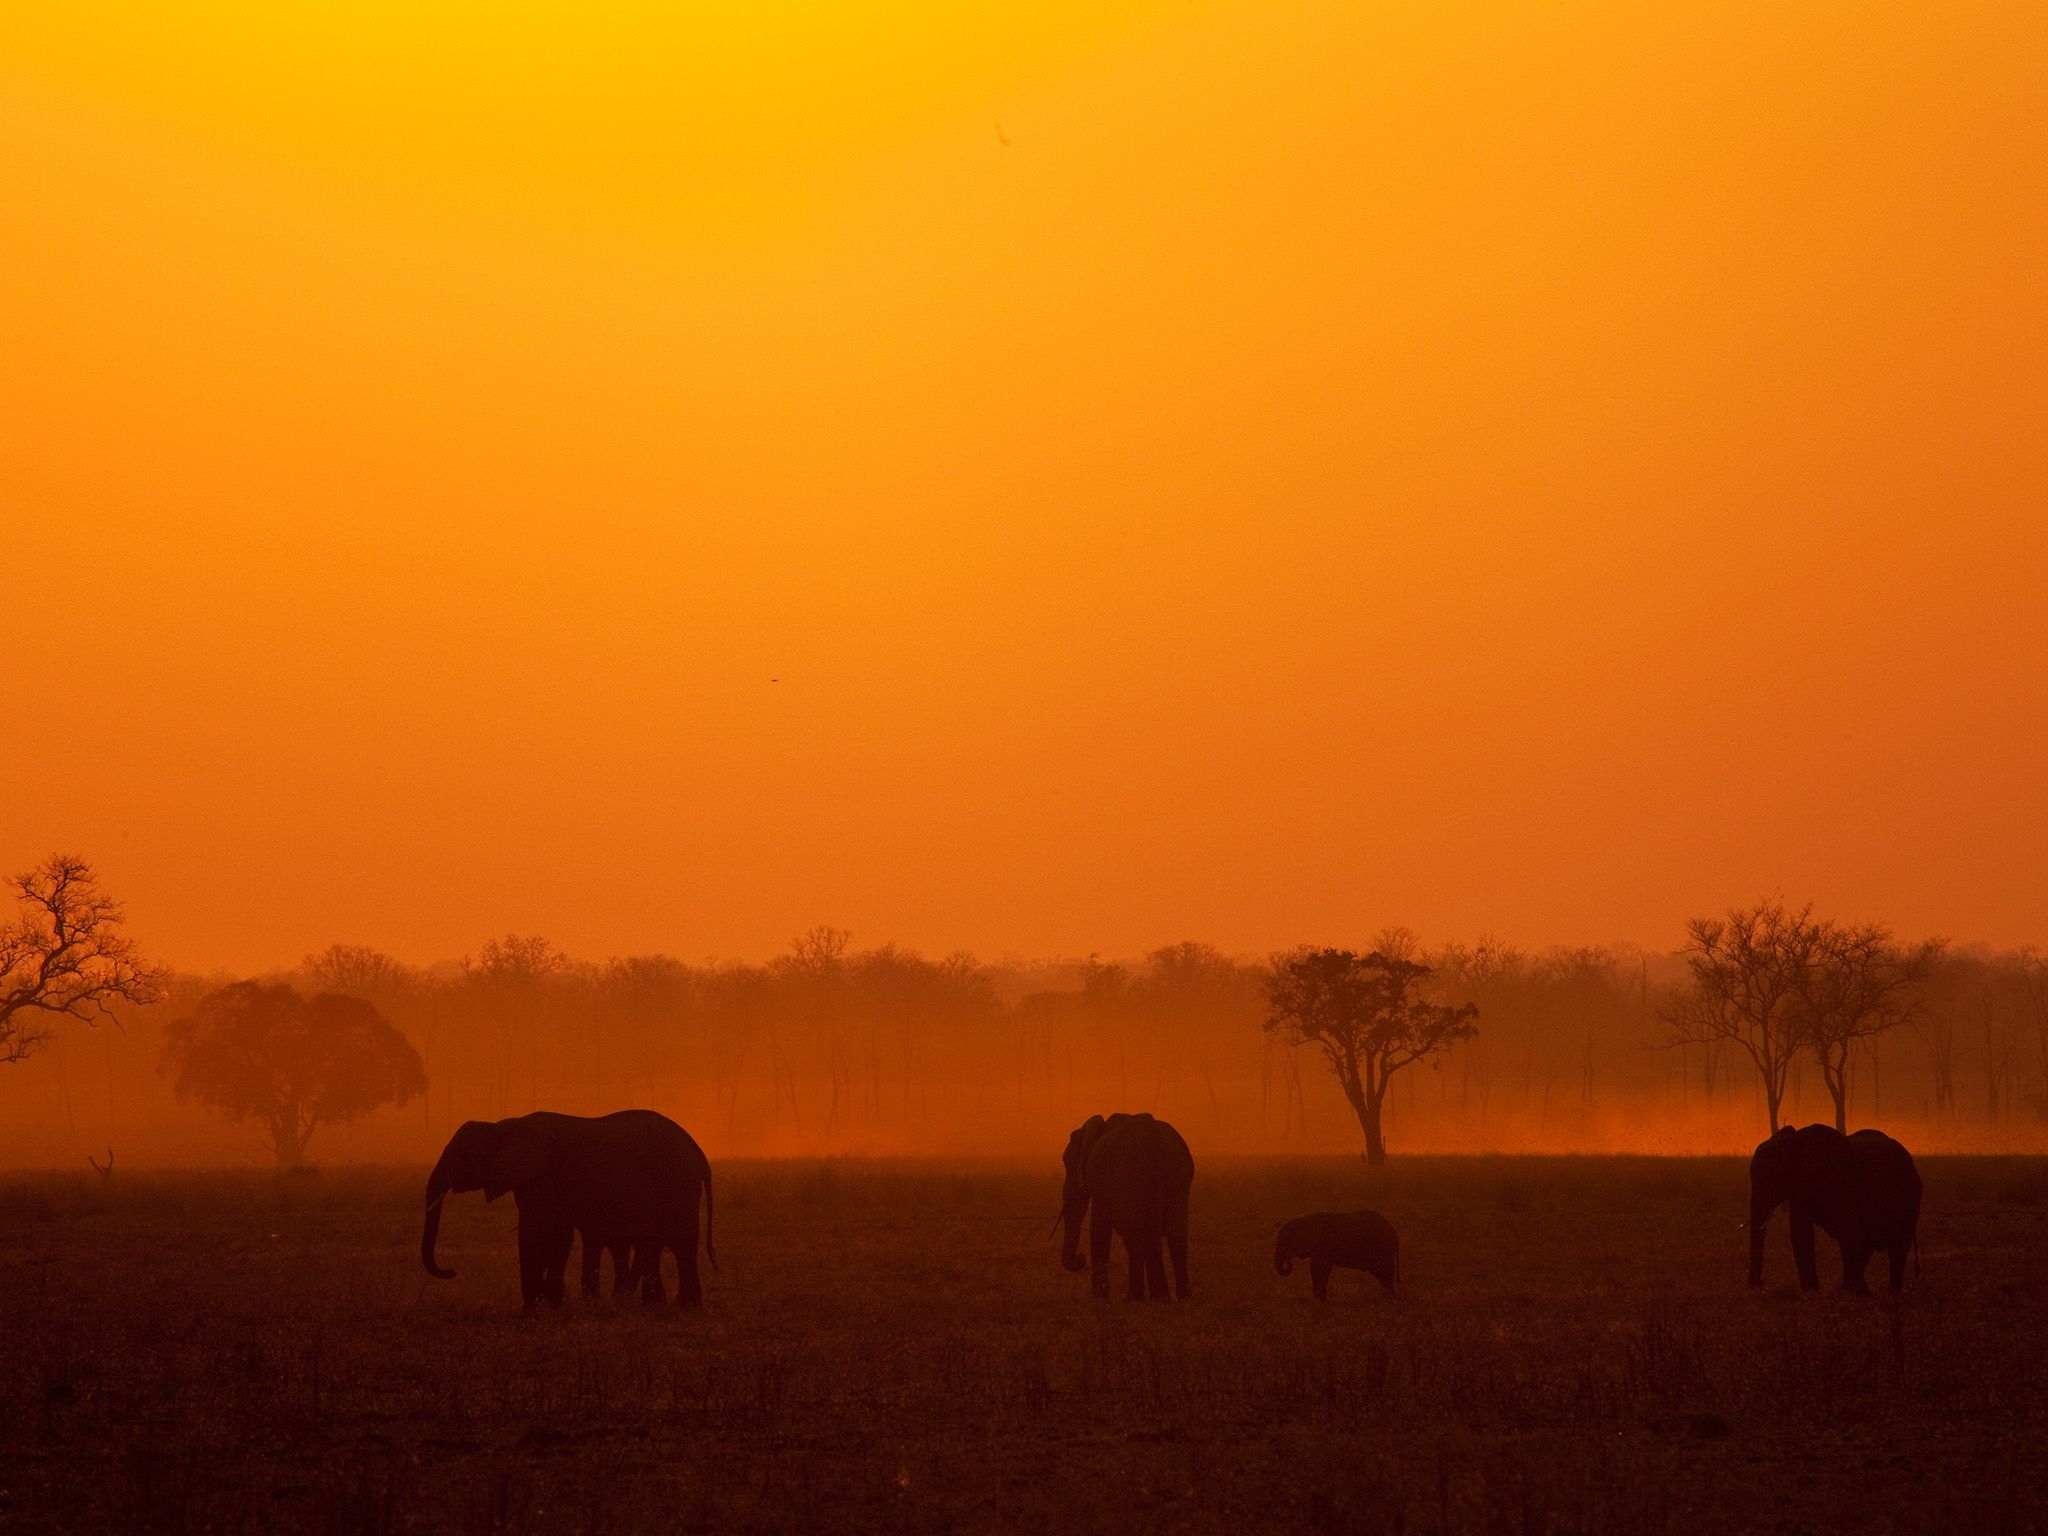 Elephant herd silhouette in sunset (landscape). Elephant herds tend to head for water during the ... [Photo of the day - October, 2014]